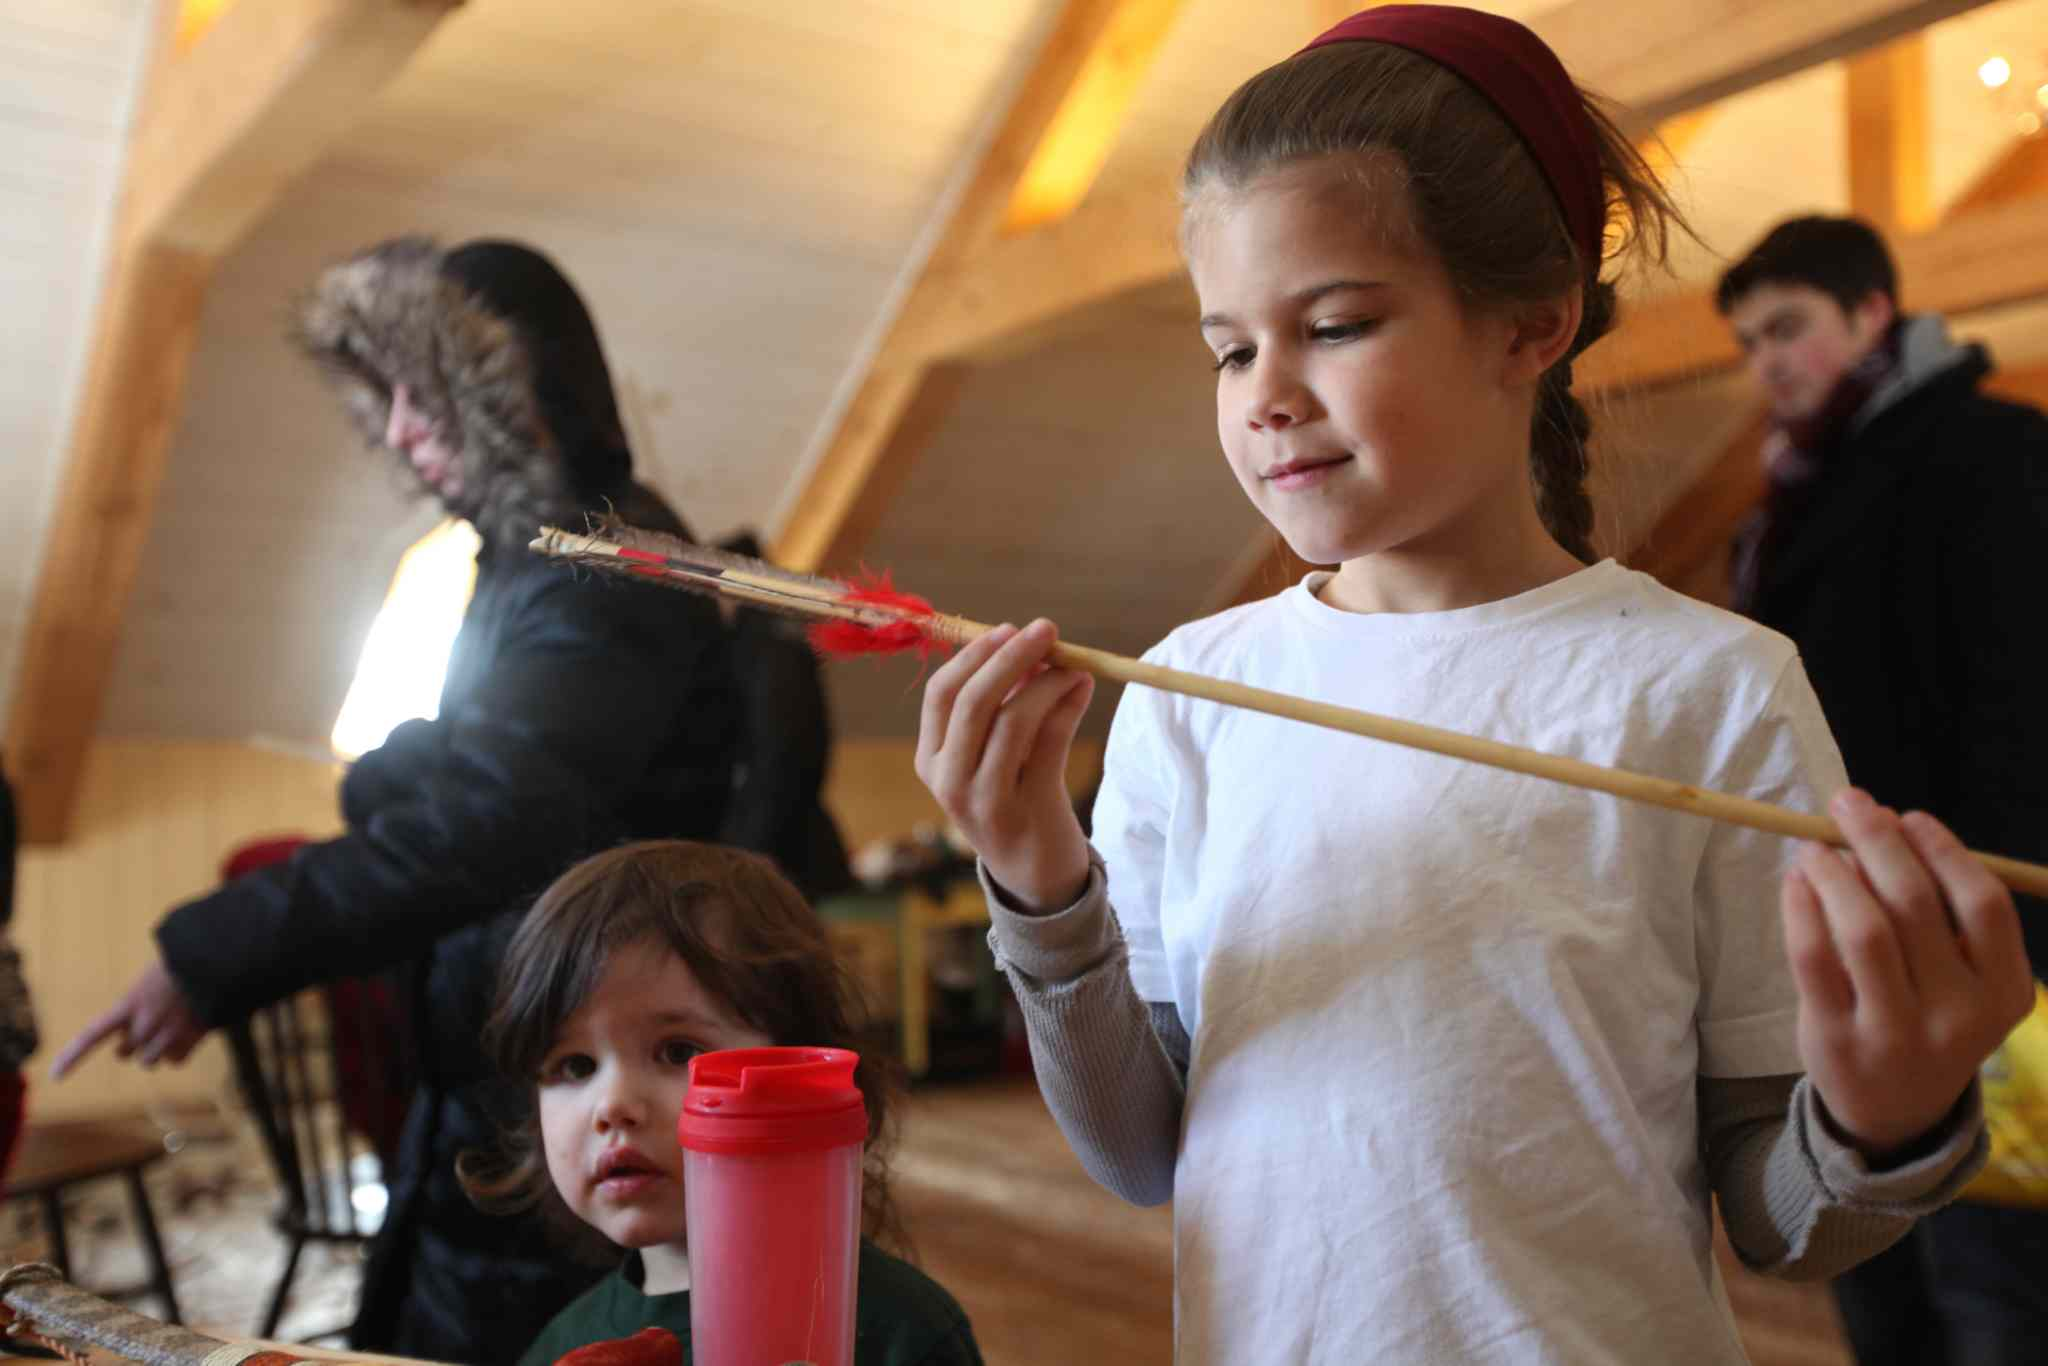 Eight year old Liam Greyeyes looks closely at a handcrafted arrow as his little brother Alex looks on at one of the Festival workshops at the Festival du Voyageur Saturday. 